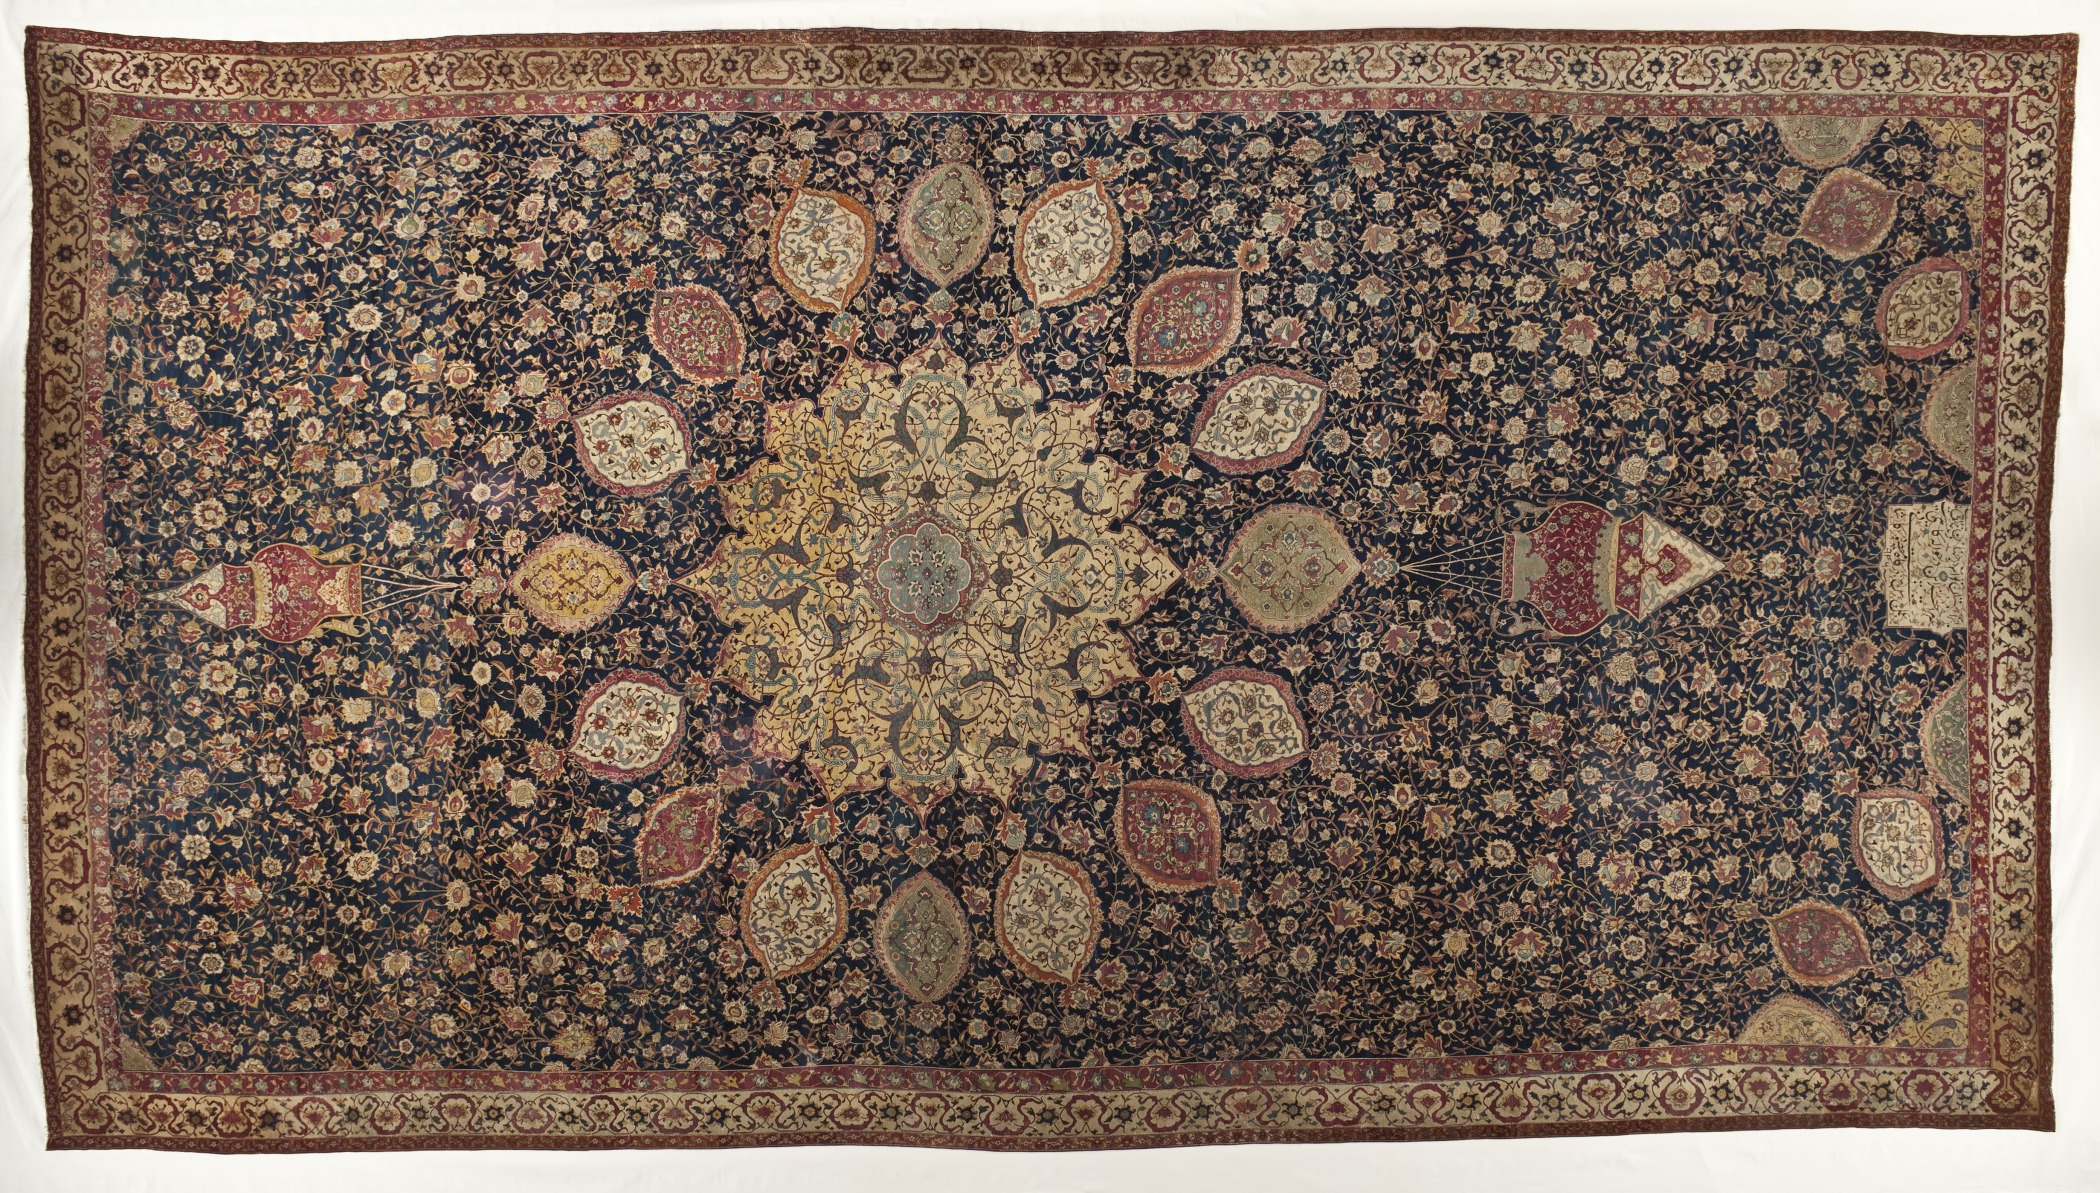 The Two Most Famous Ardabil Carpets Rugs 4 A Blog About